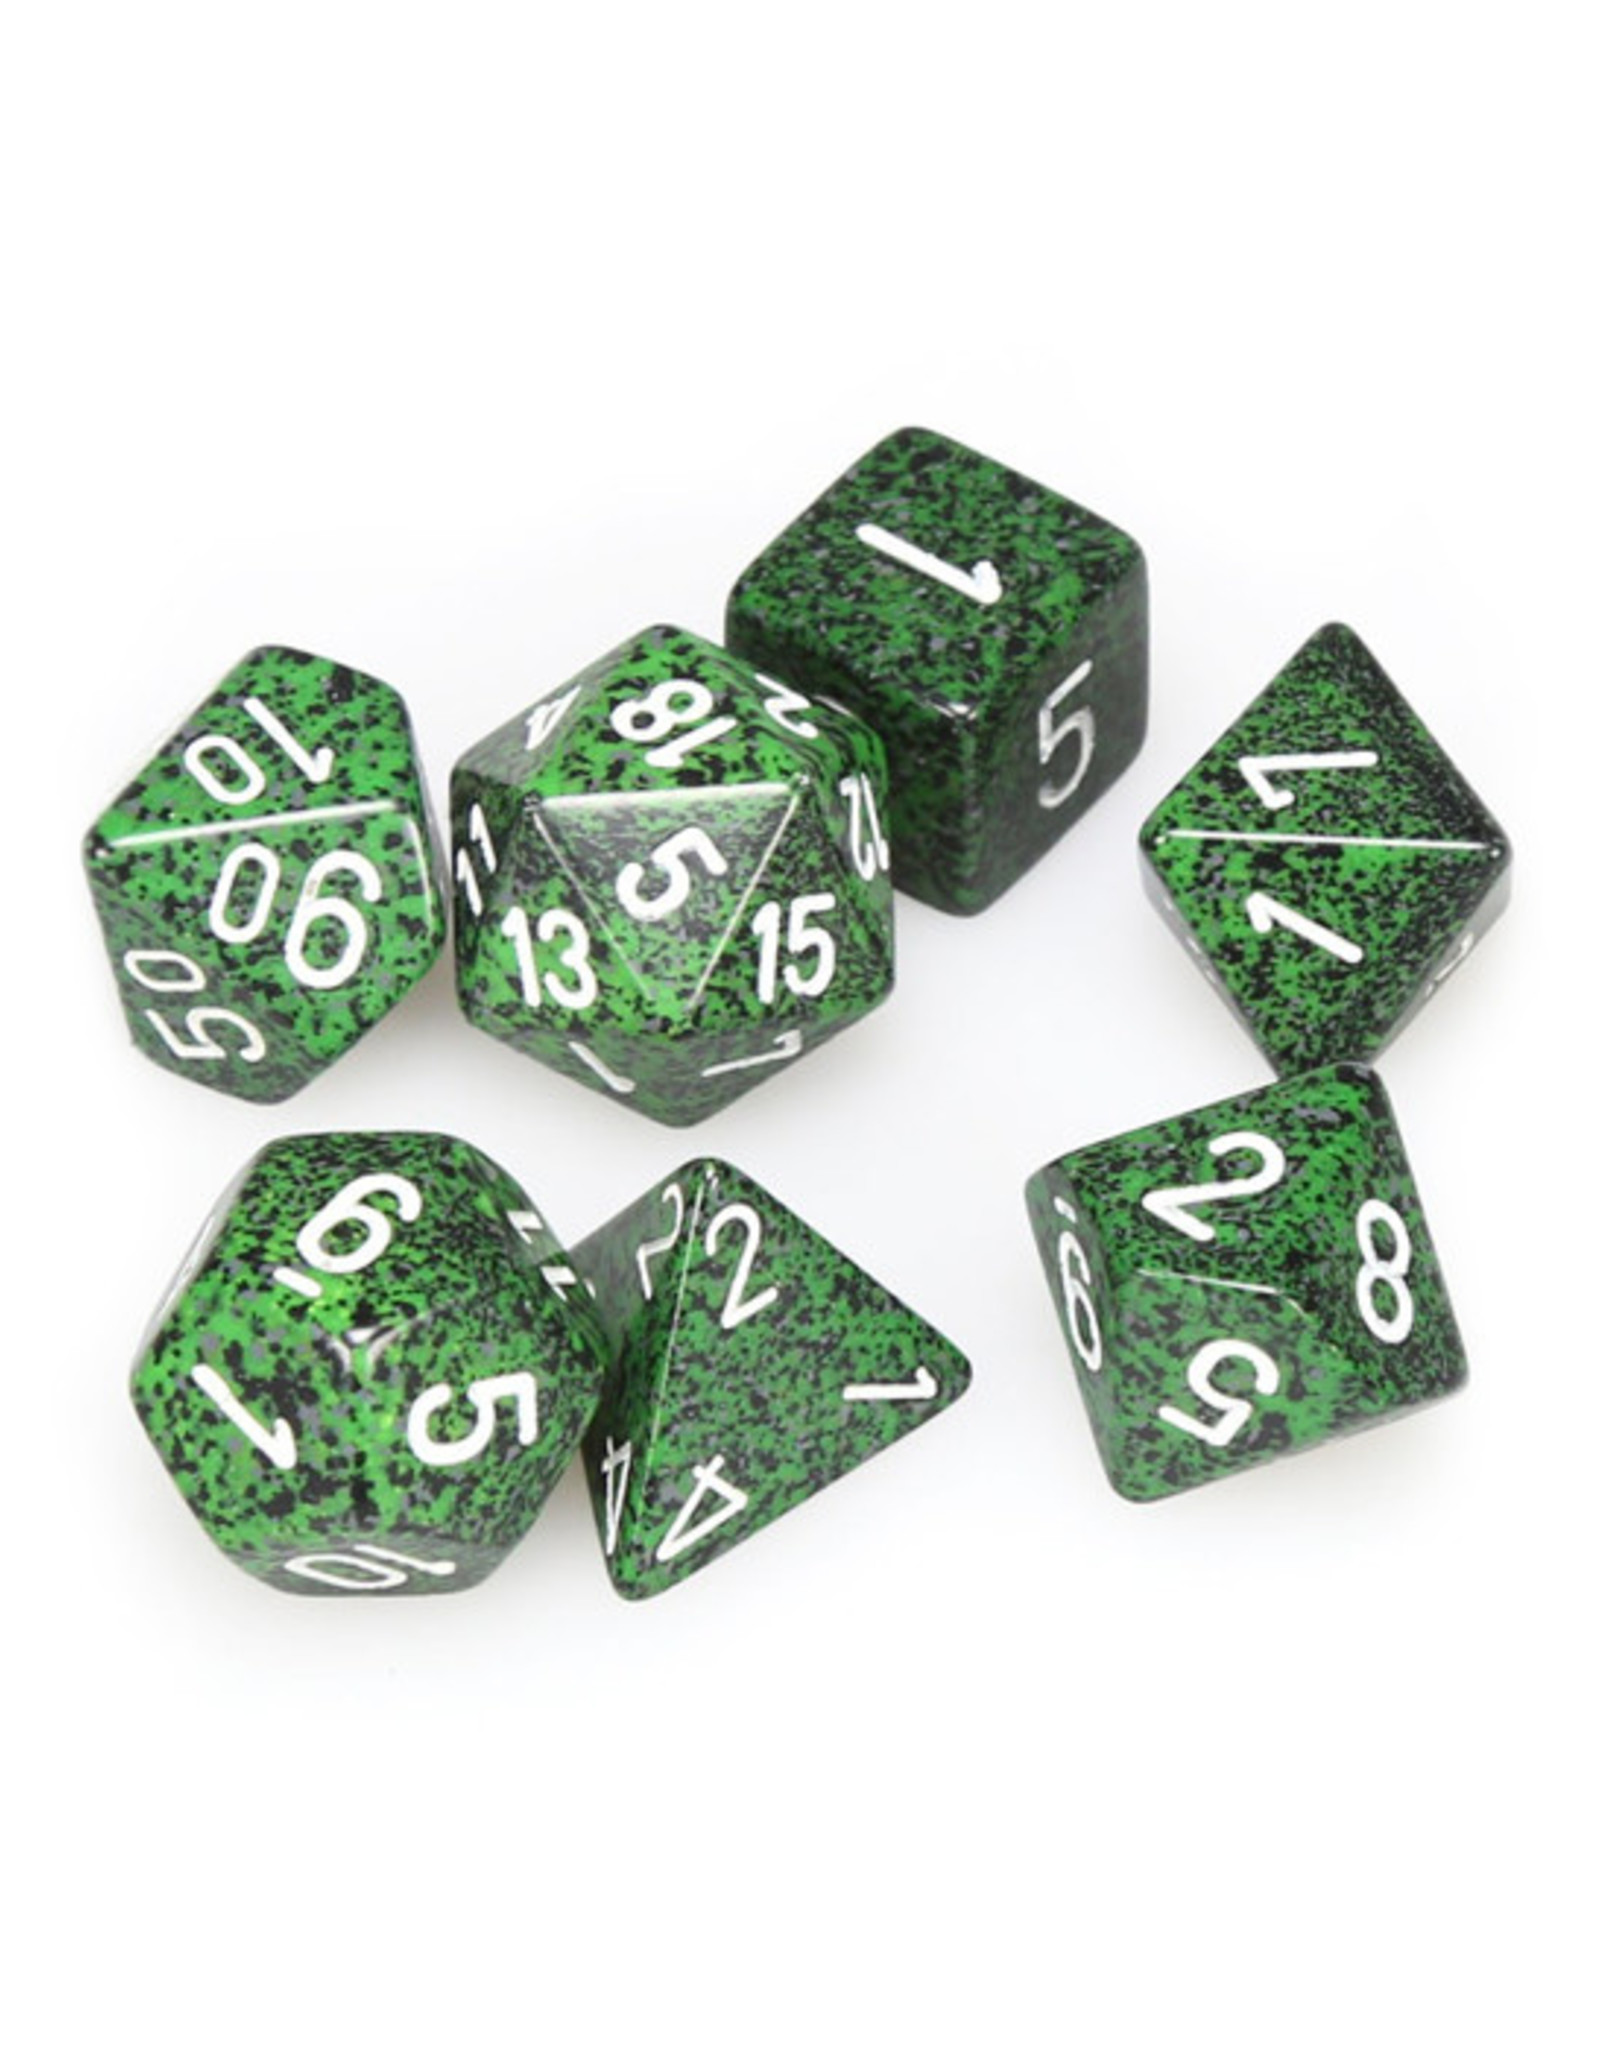 Chessex Chessex: Poly 7 Set - Speckled - Recon